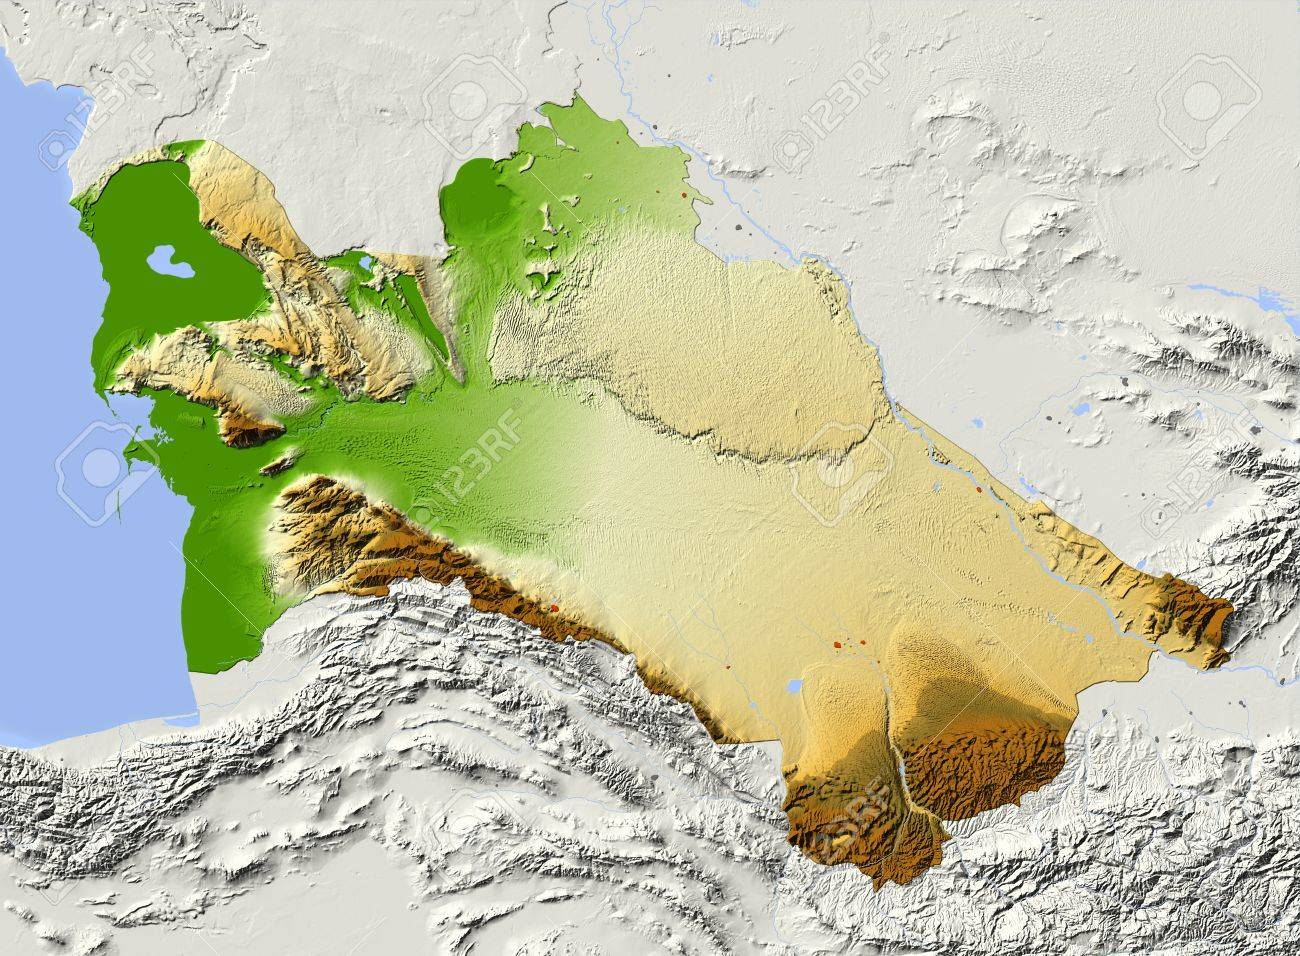 Turkmenistan Shaded Relief Map Colored According To Elevation